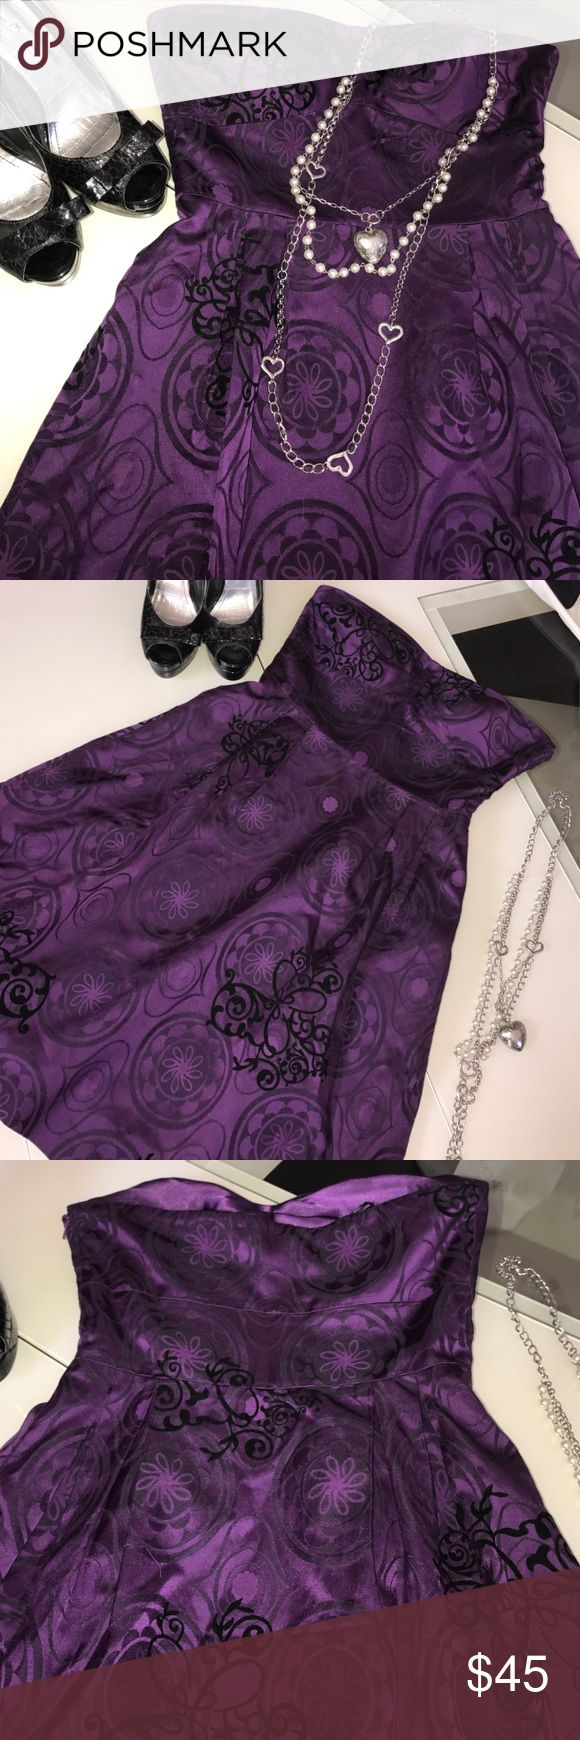 Guess dress Guess dress strapless beautiful purple and black color. Size says 5 on dress Guess Dresses Mini